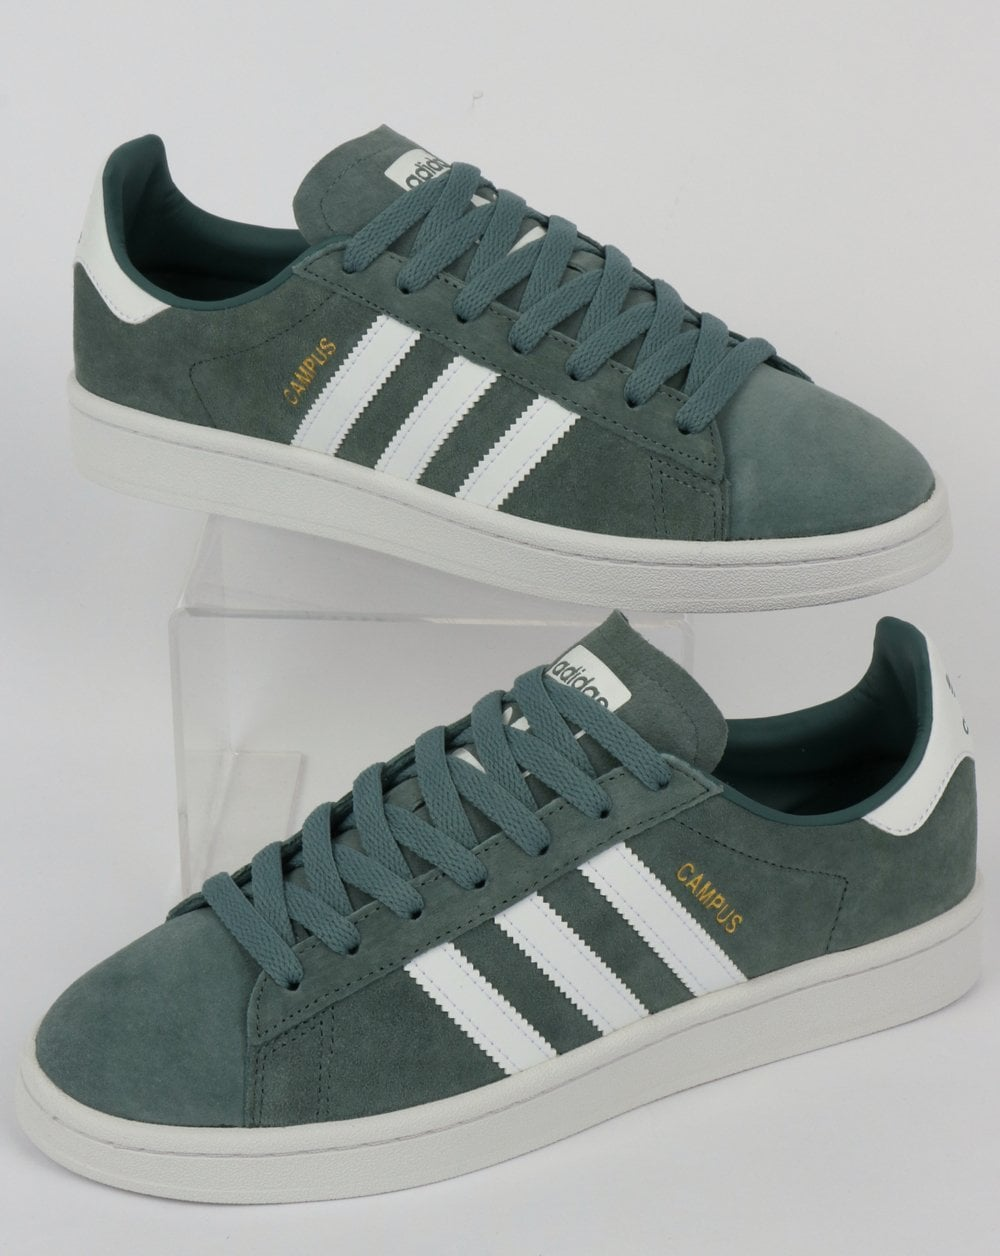 Adidas Campus Trainers Raw Green/White